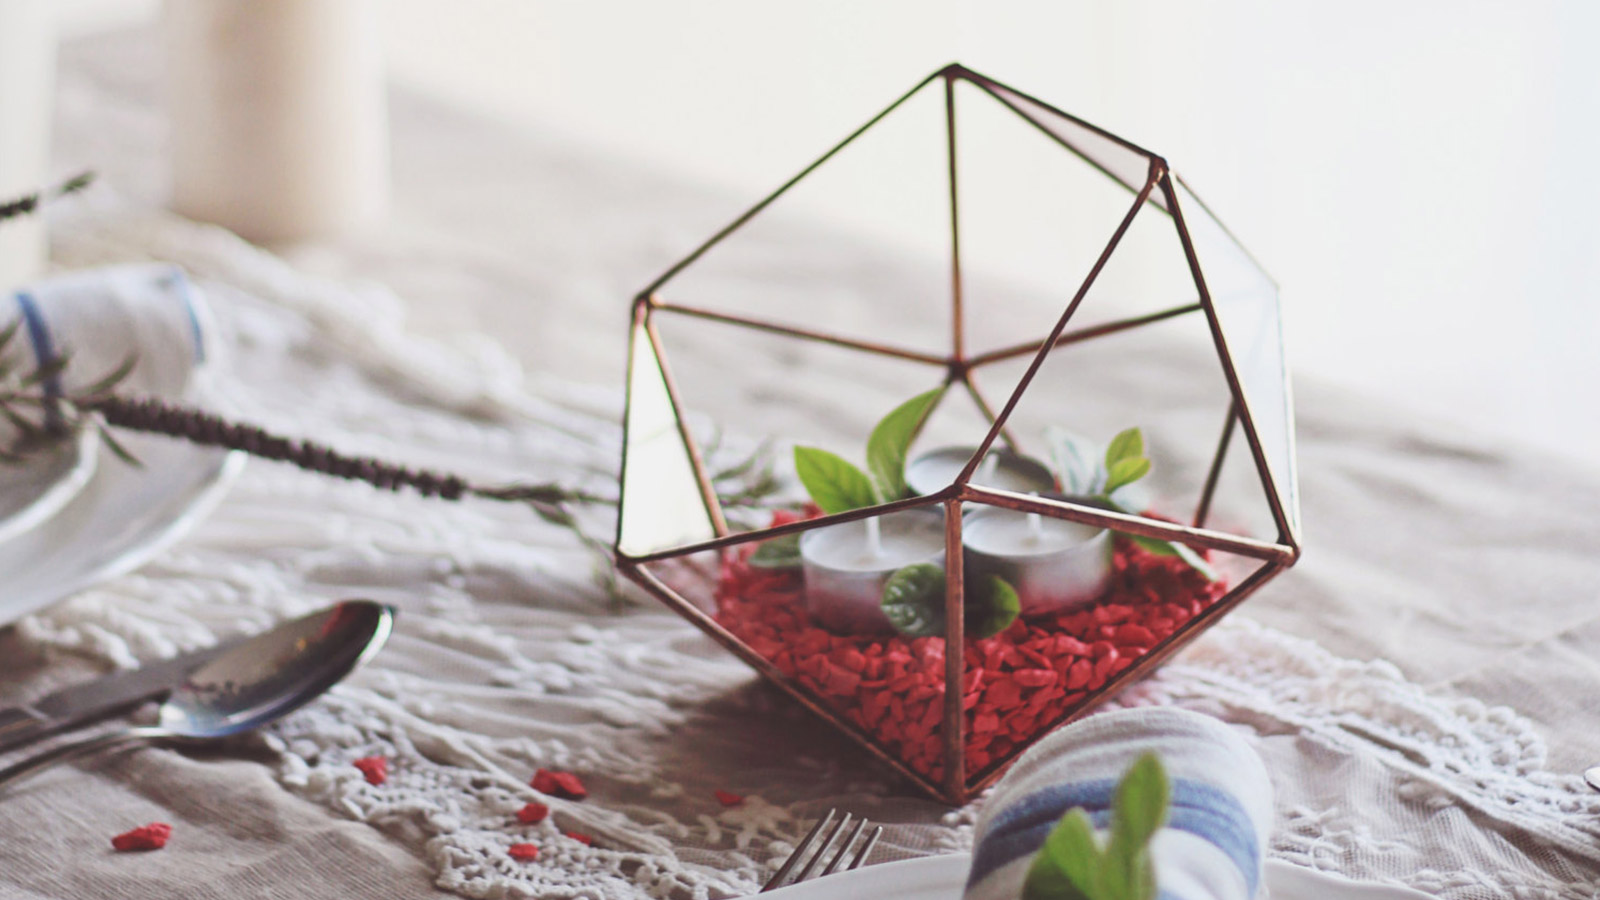 Adorable gift idea for home decor lovers: handmade geometric ...